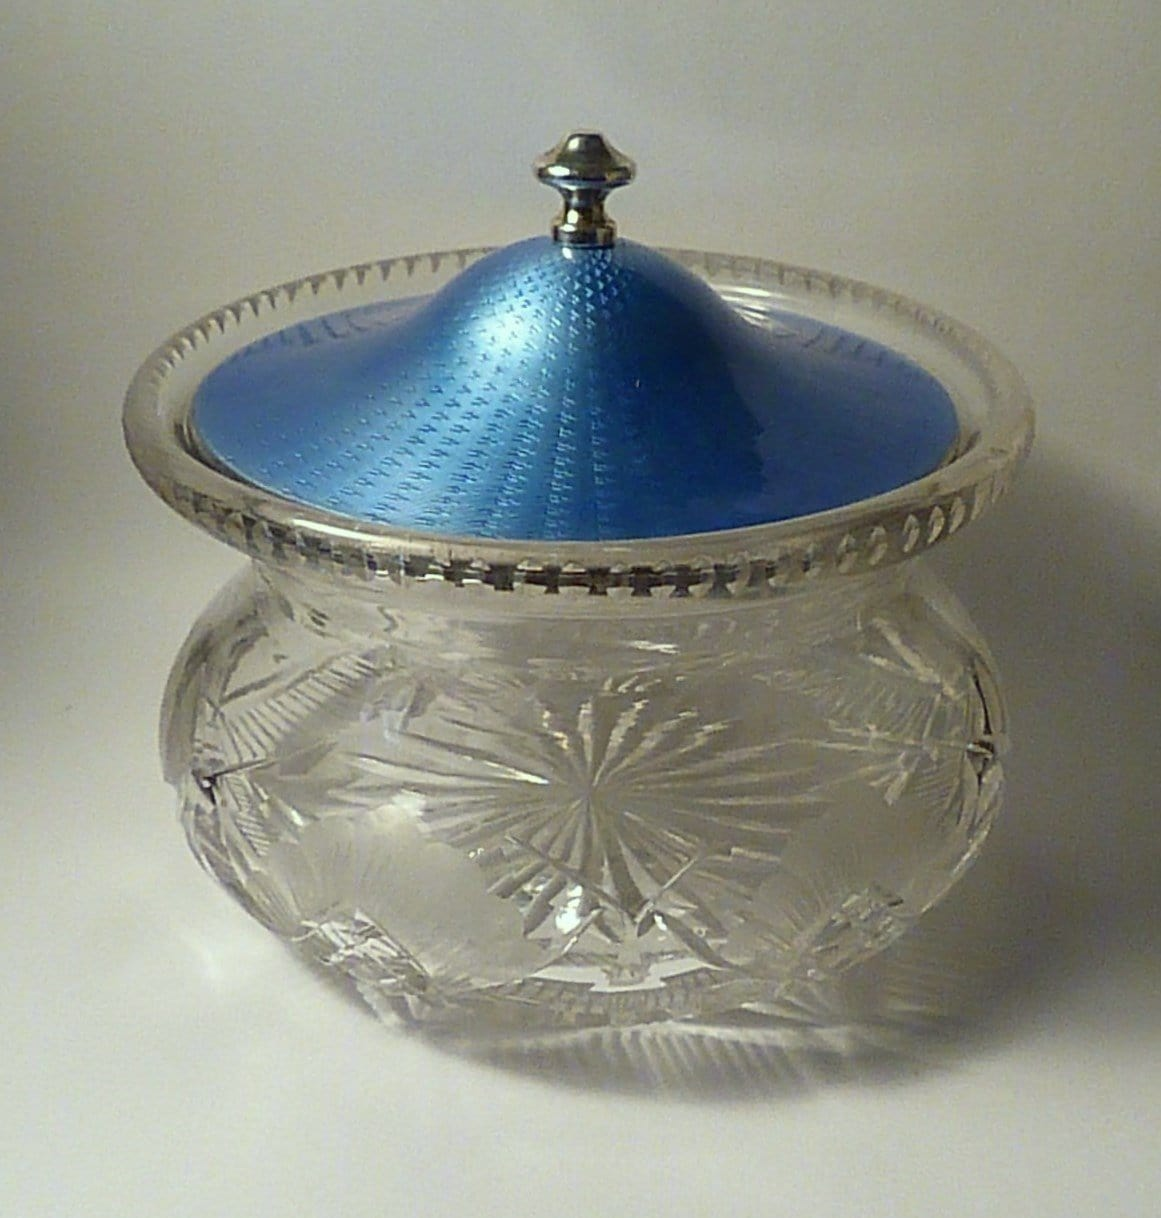 Antique silver gifts for her Art Deco large blue guilloche powder bowl 1930